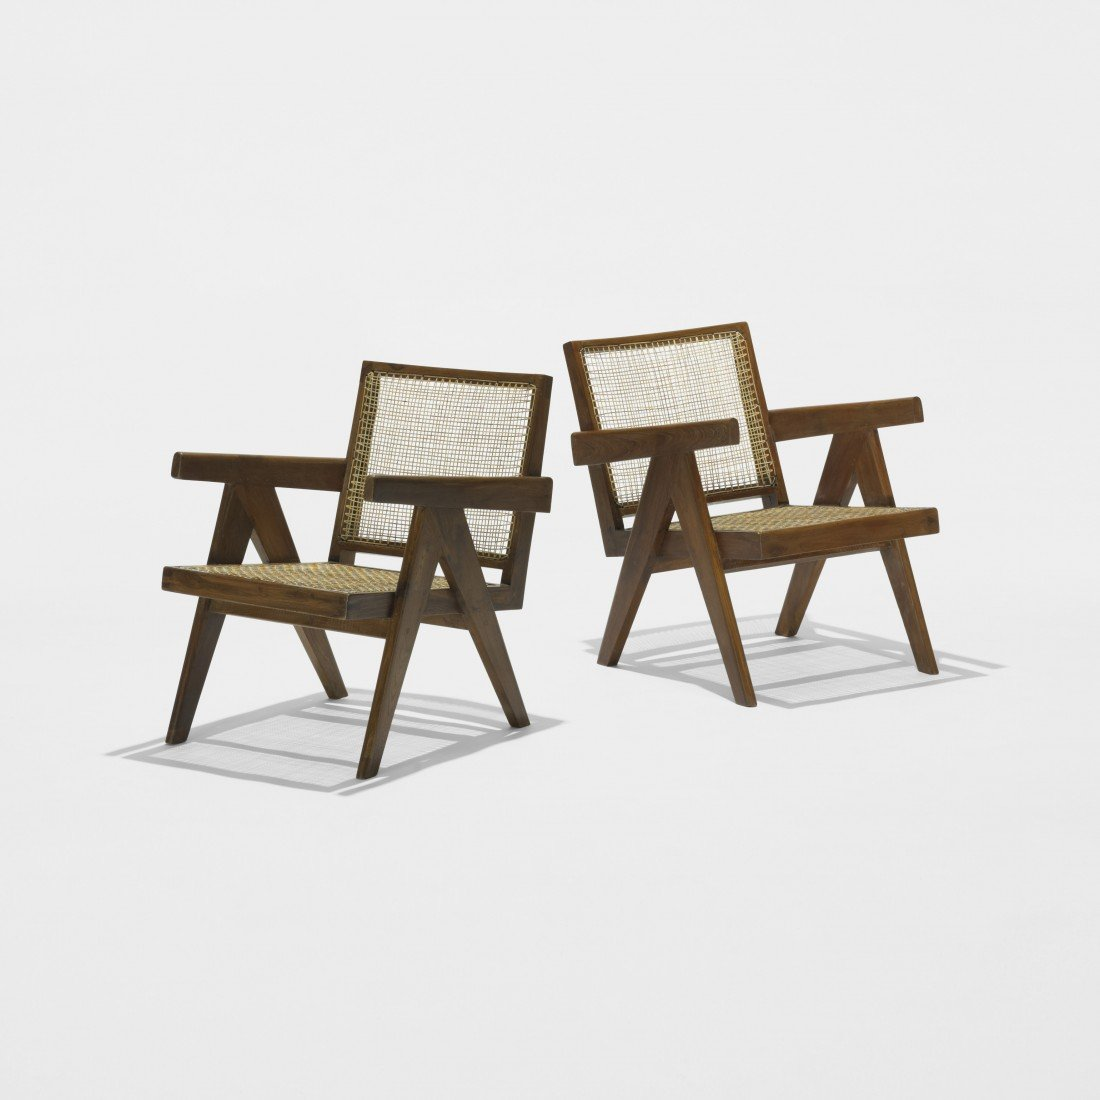 169: Pierre Jeanneret pair of lounge chairs